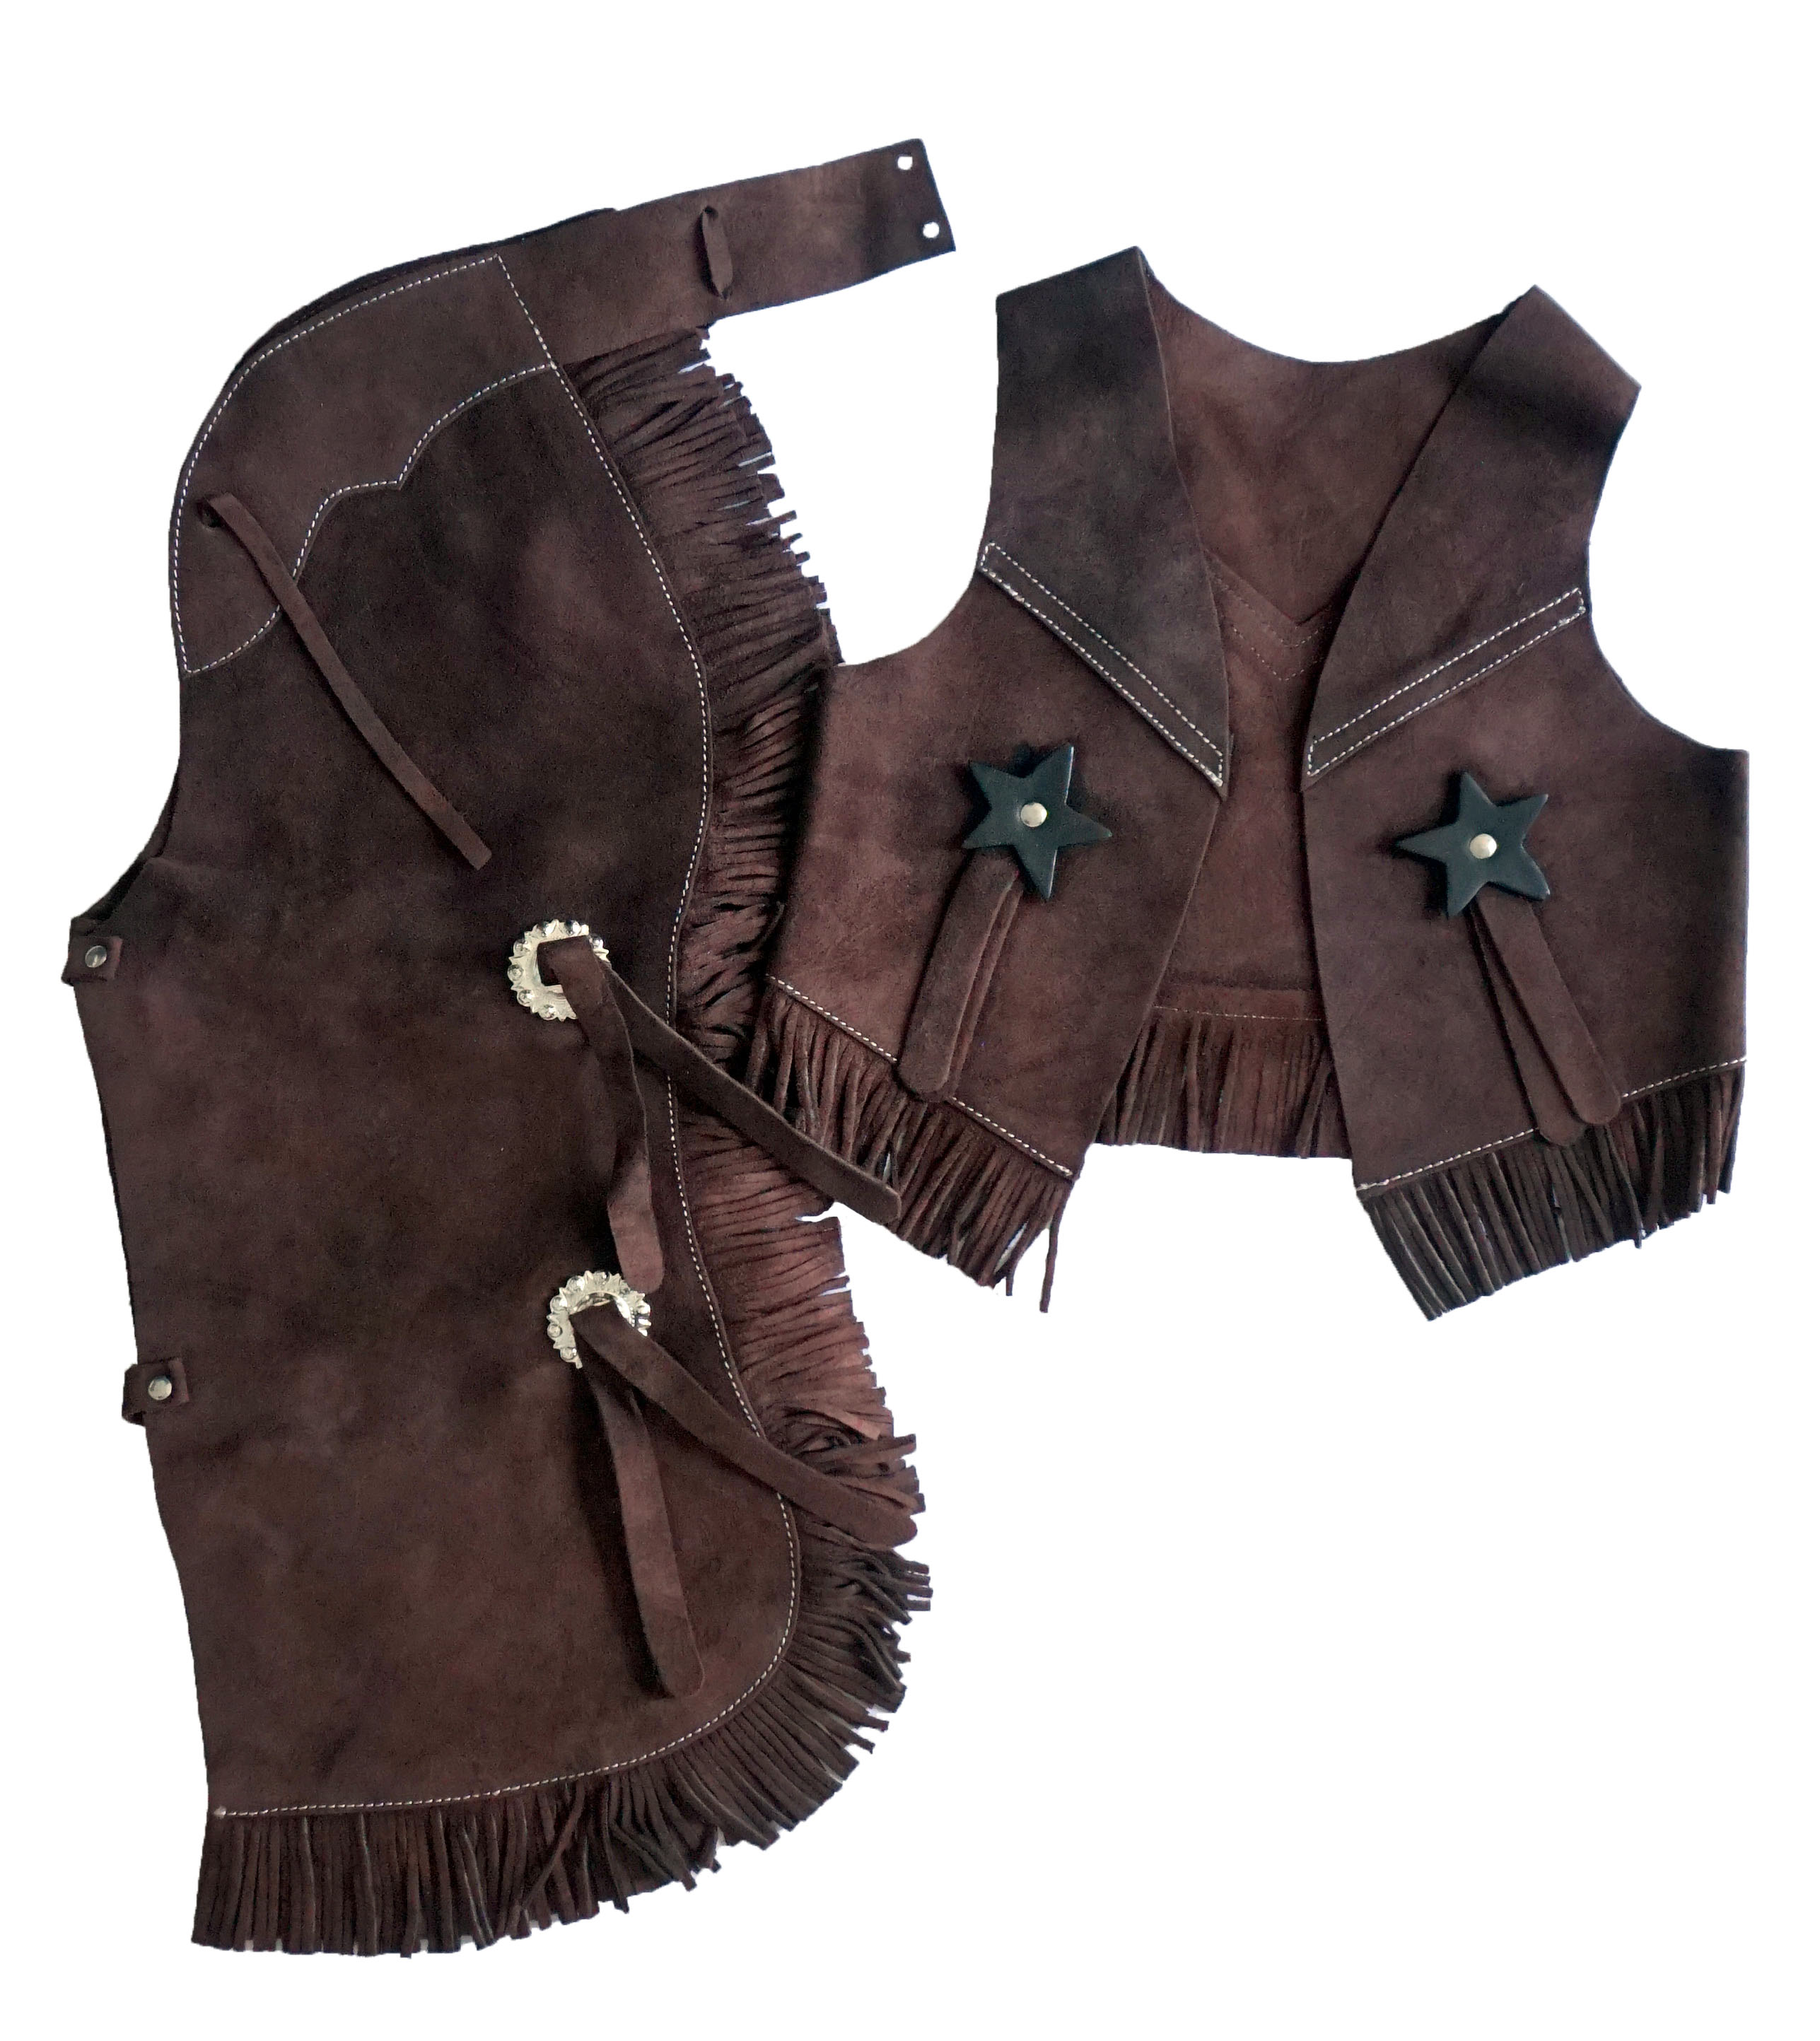 Children's Suede Leather Western Chaps and Vest Set